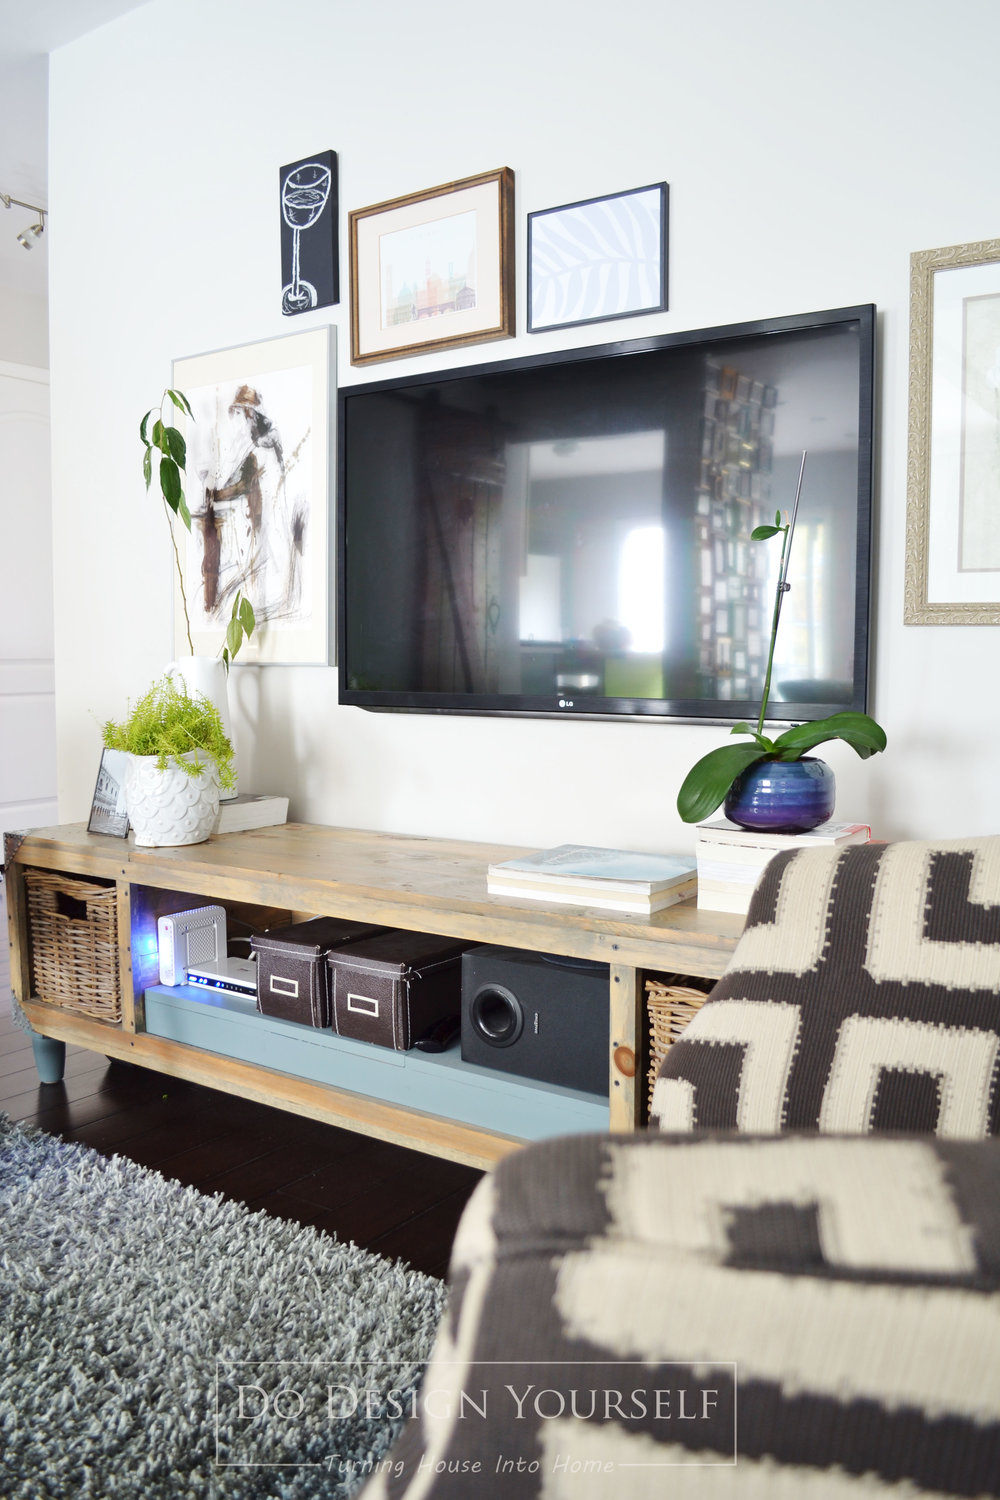 decorate around the TV stand with gallery wall and indoor plants